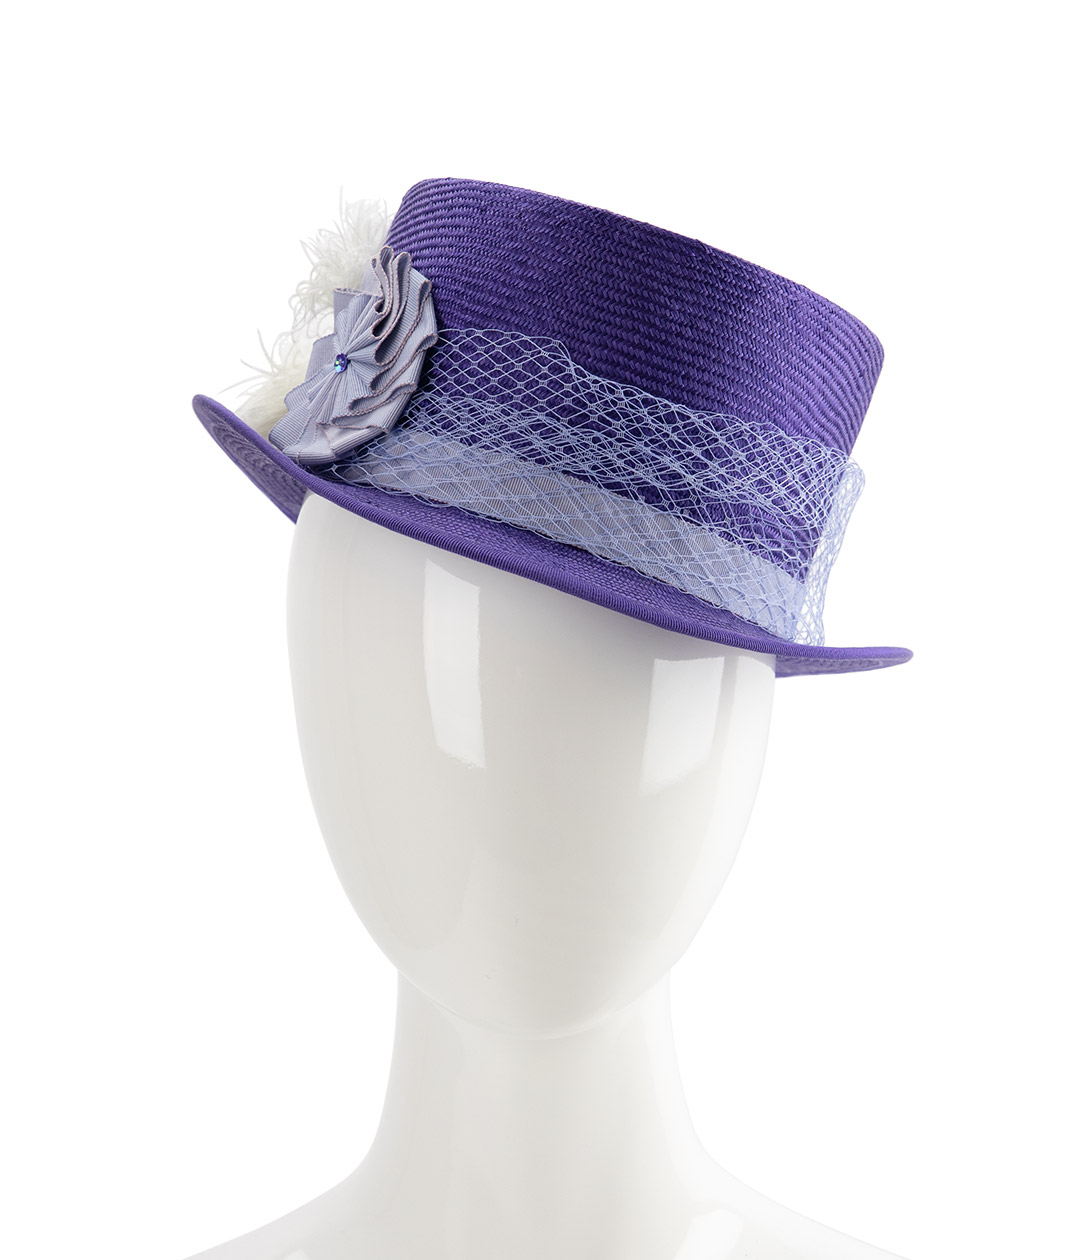 Straw top hat for Kentucky Derby